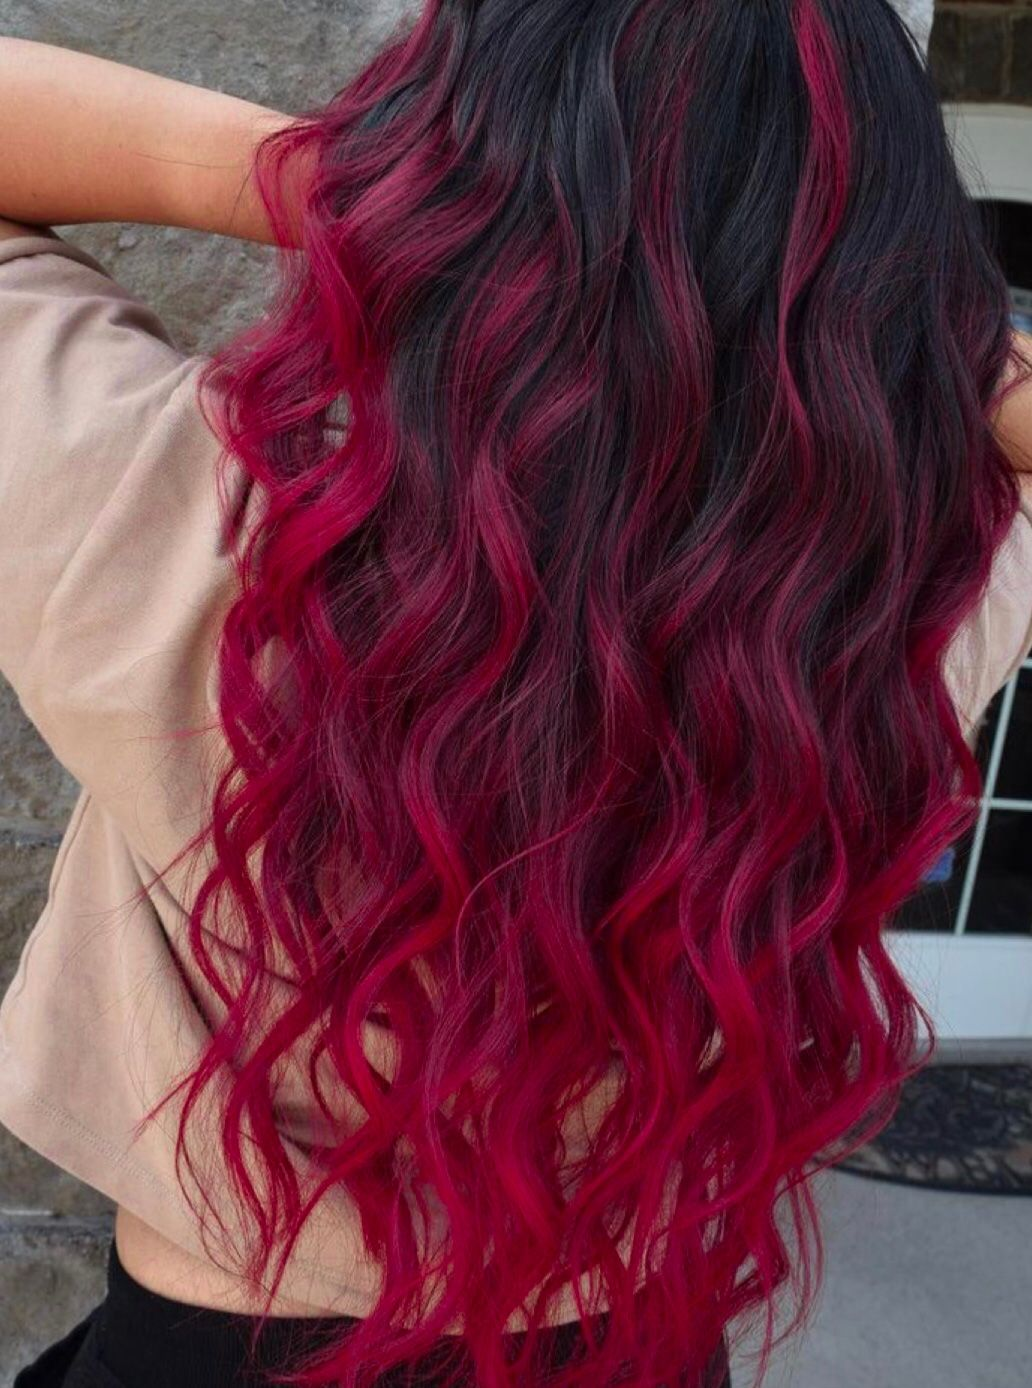 Krasnye Volosy In 2020 Black Hair Red Ombre Hair Styles Red Ombre Hair